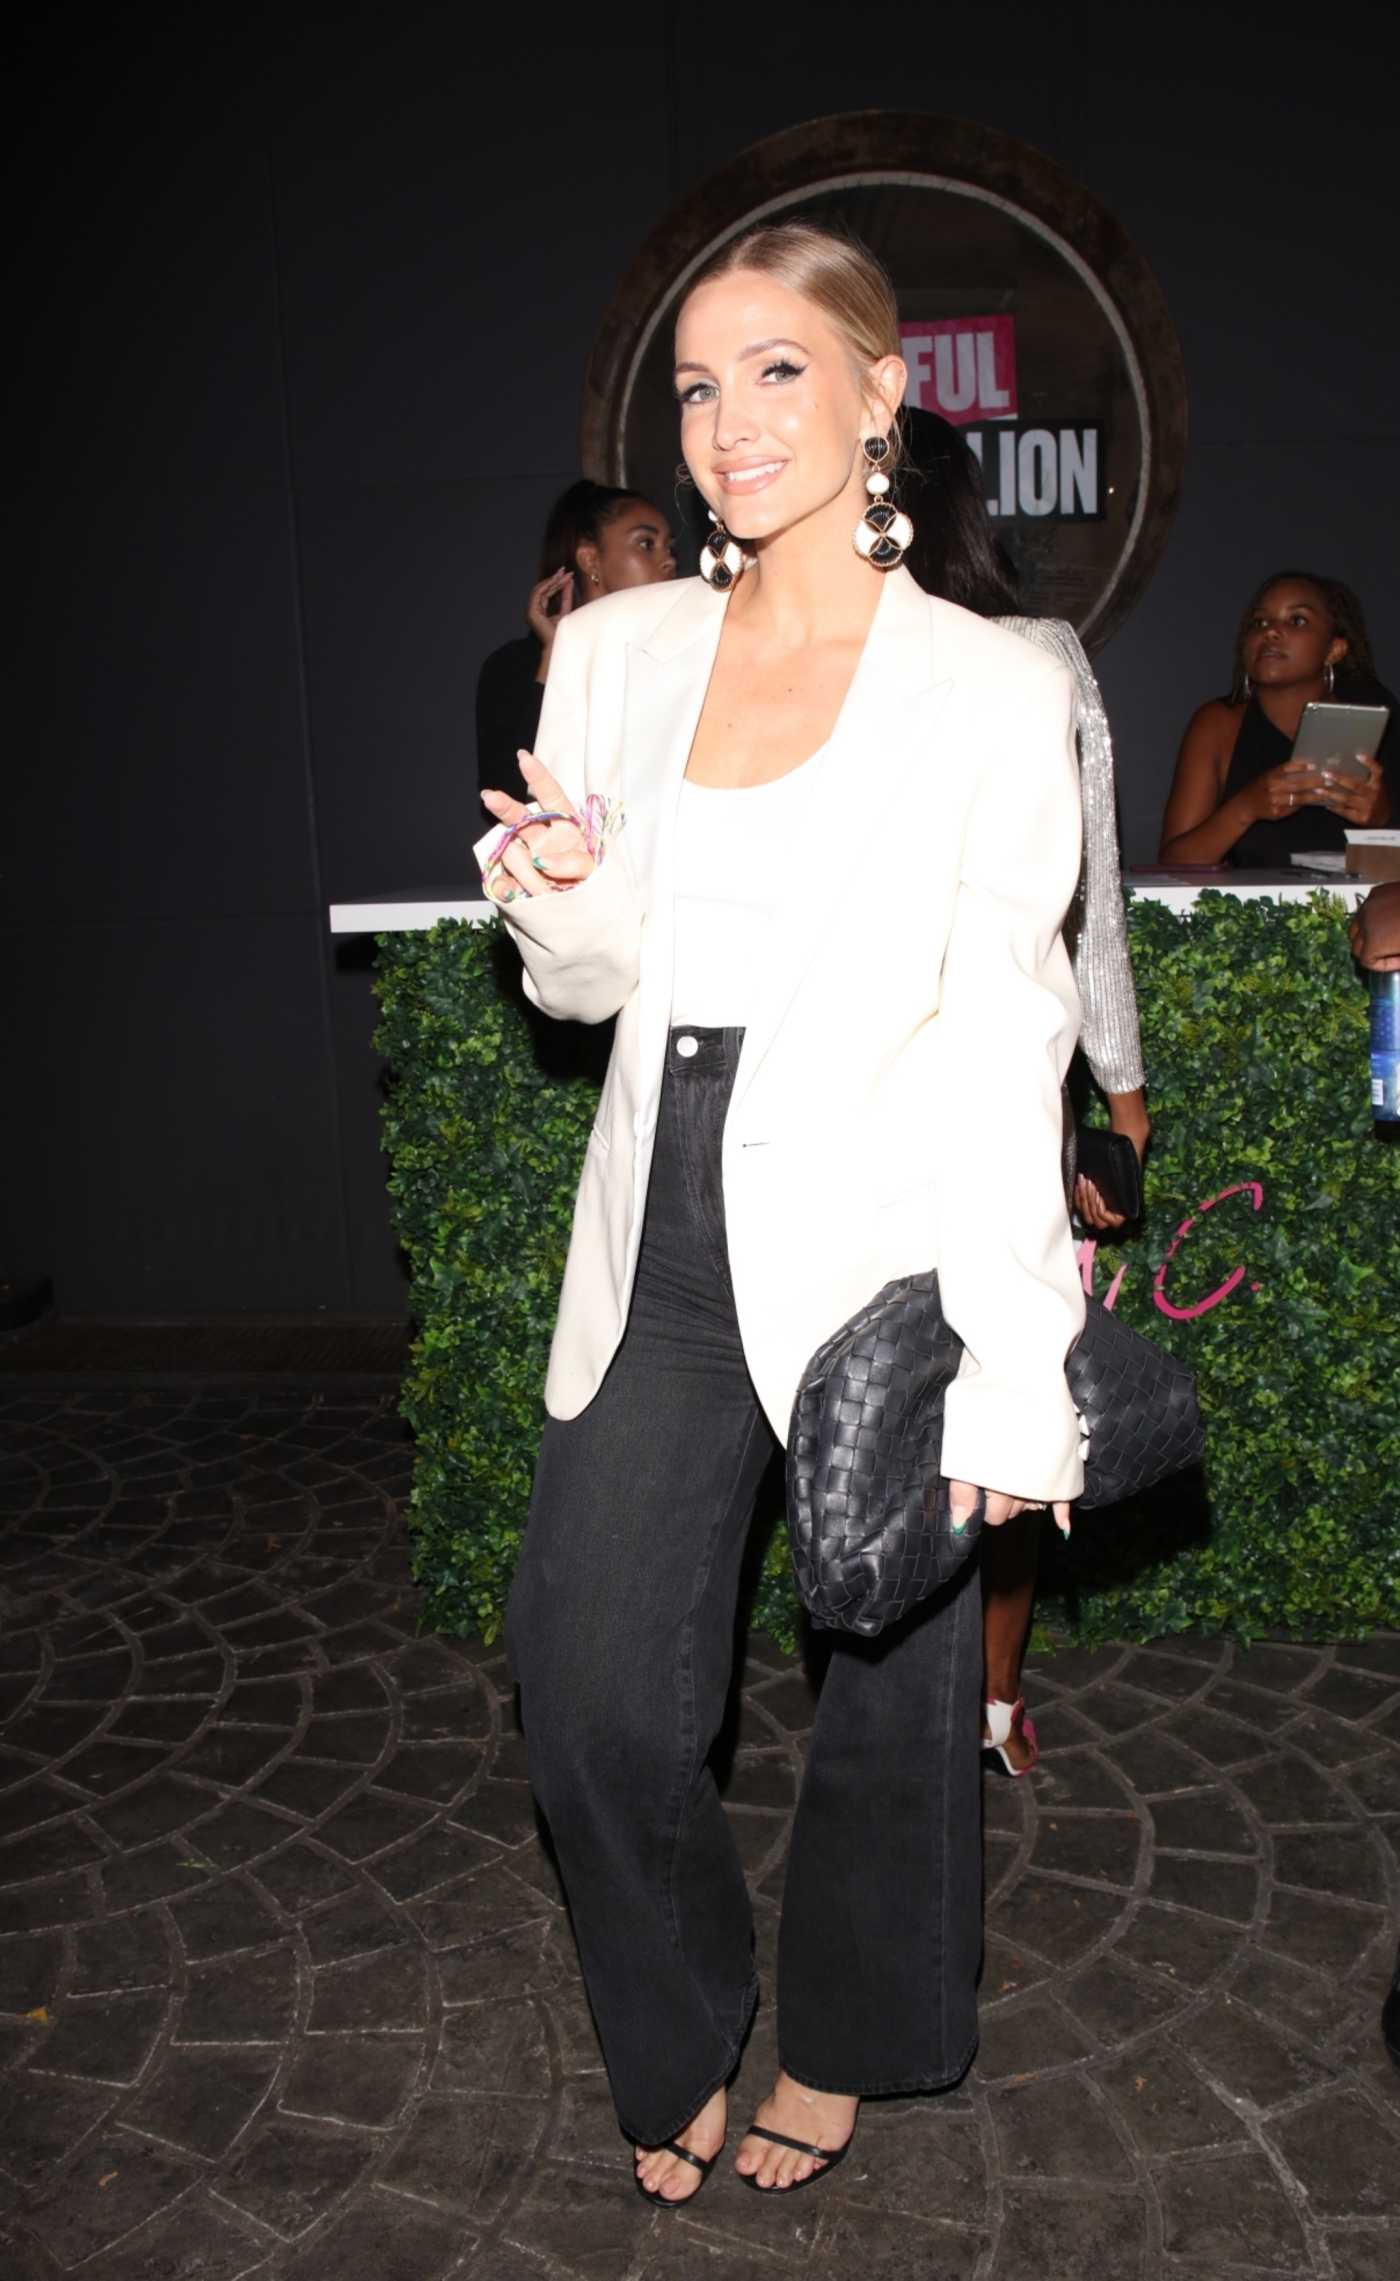 Ashlee Simpson in a White Blazer Arrives at the UOMA Beauty by Sharon C. Event in Hollywood 06/18/2021